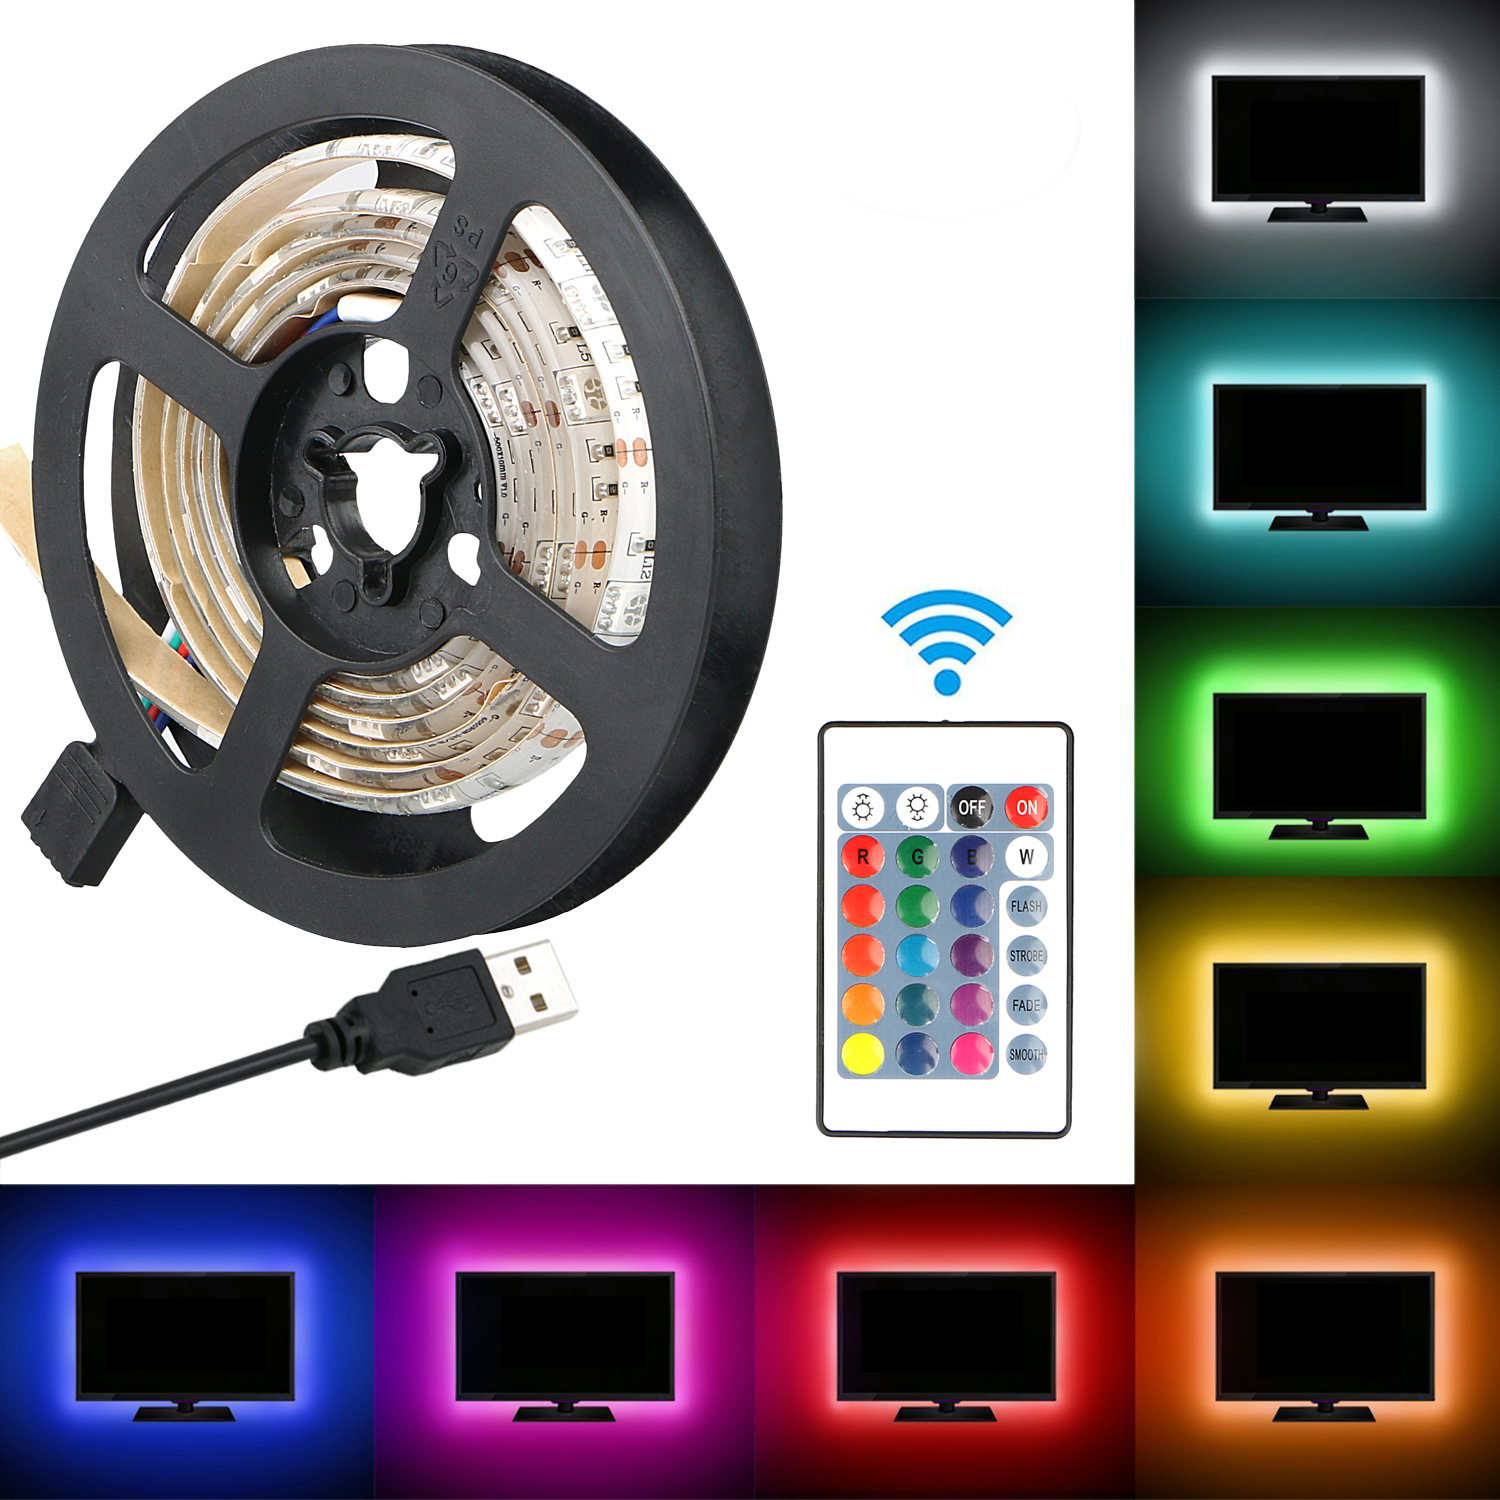 LED TV Backlight Strip, RGB Waterproof 5050 SMD Flexible LED Strip Light 1M 24keys Remote Power for HDTV Bias lighting Flat Screen TV, LCD, PC, Desktop Monitors